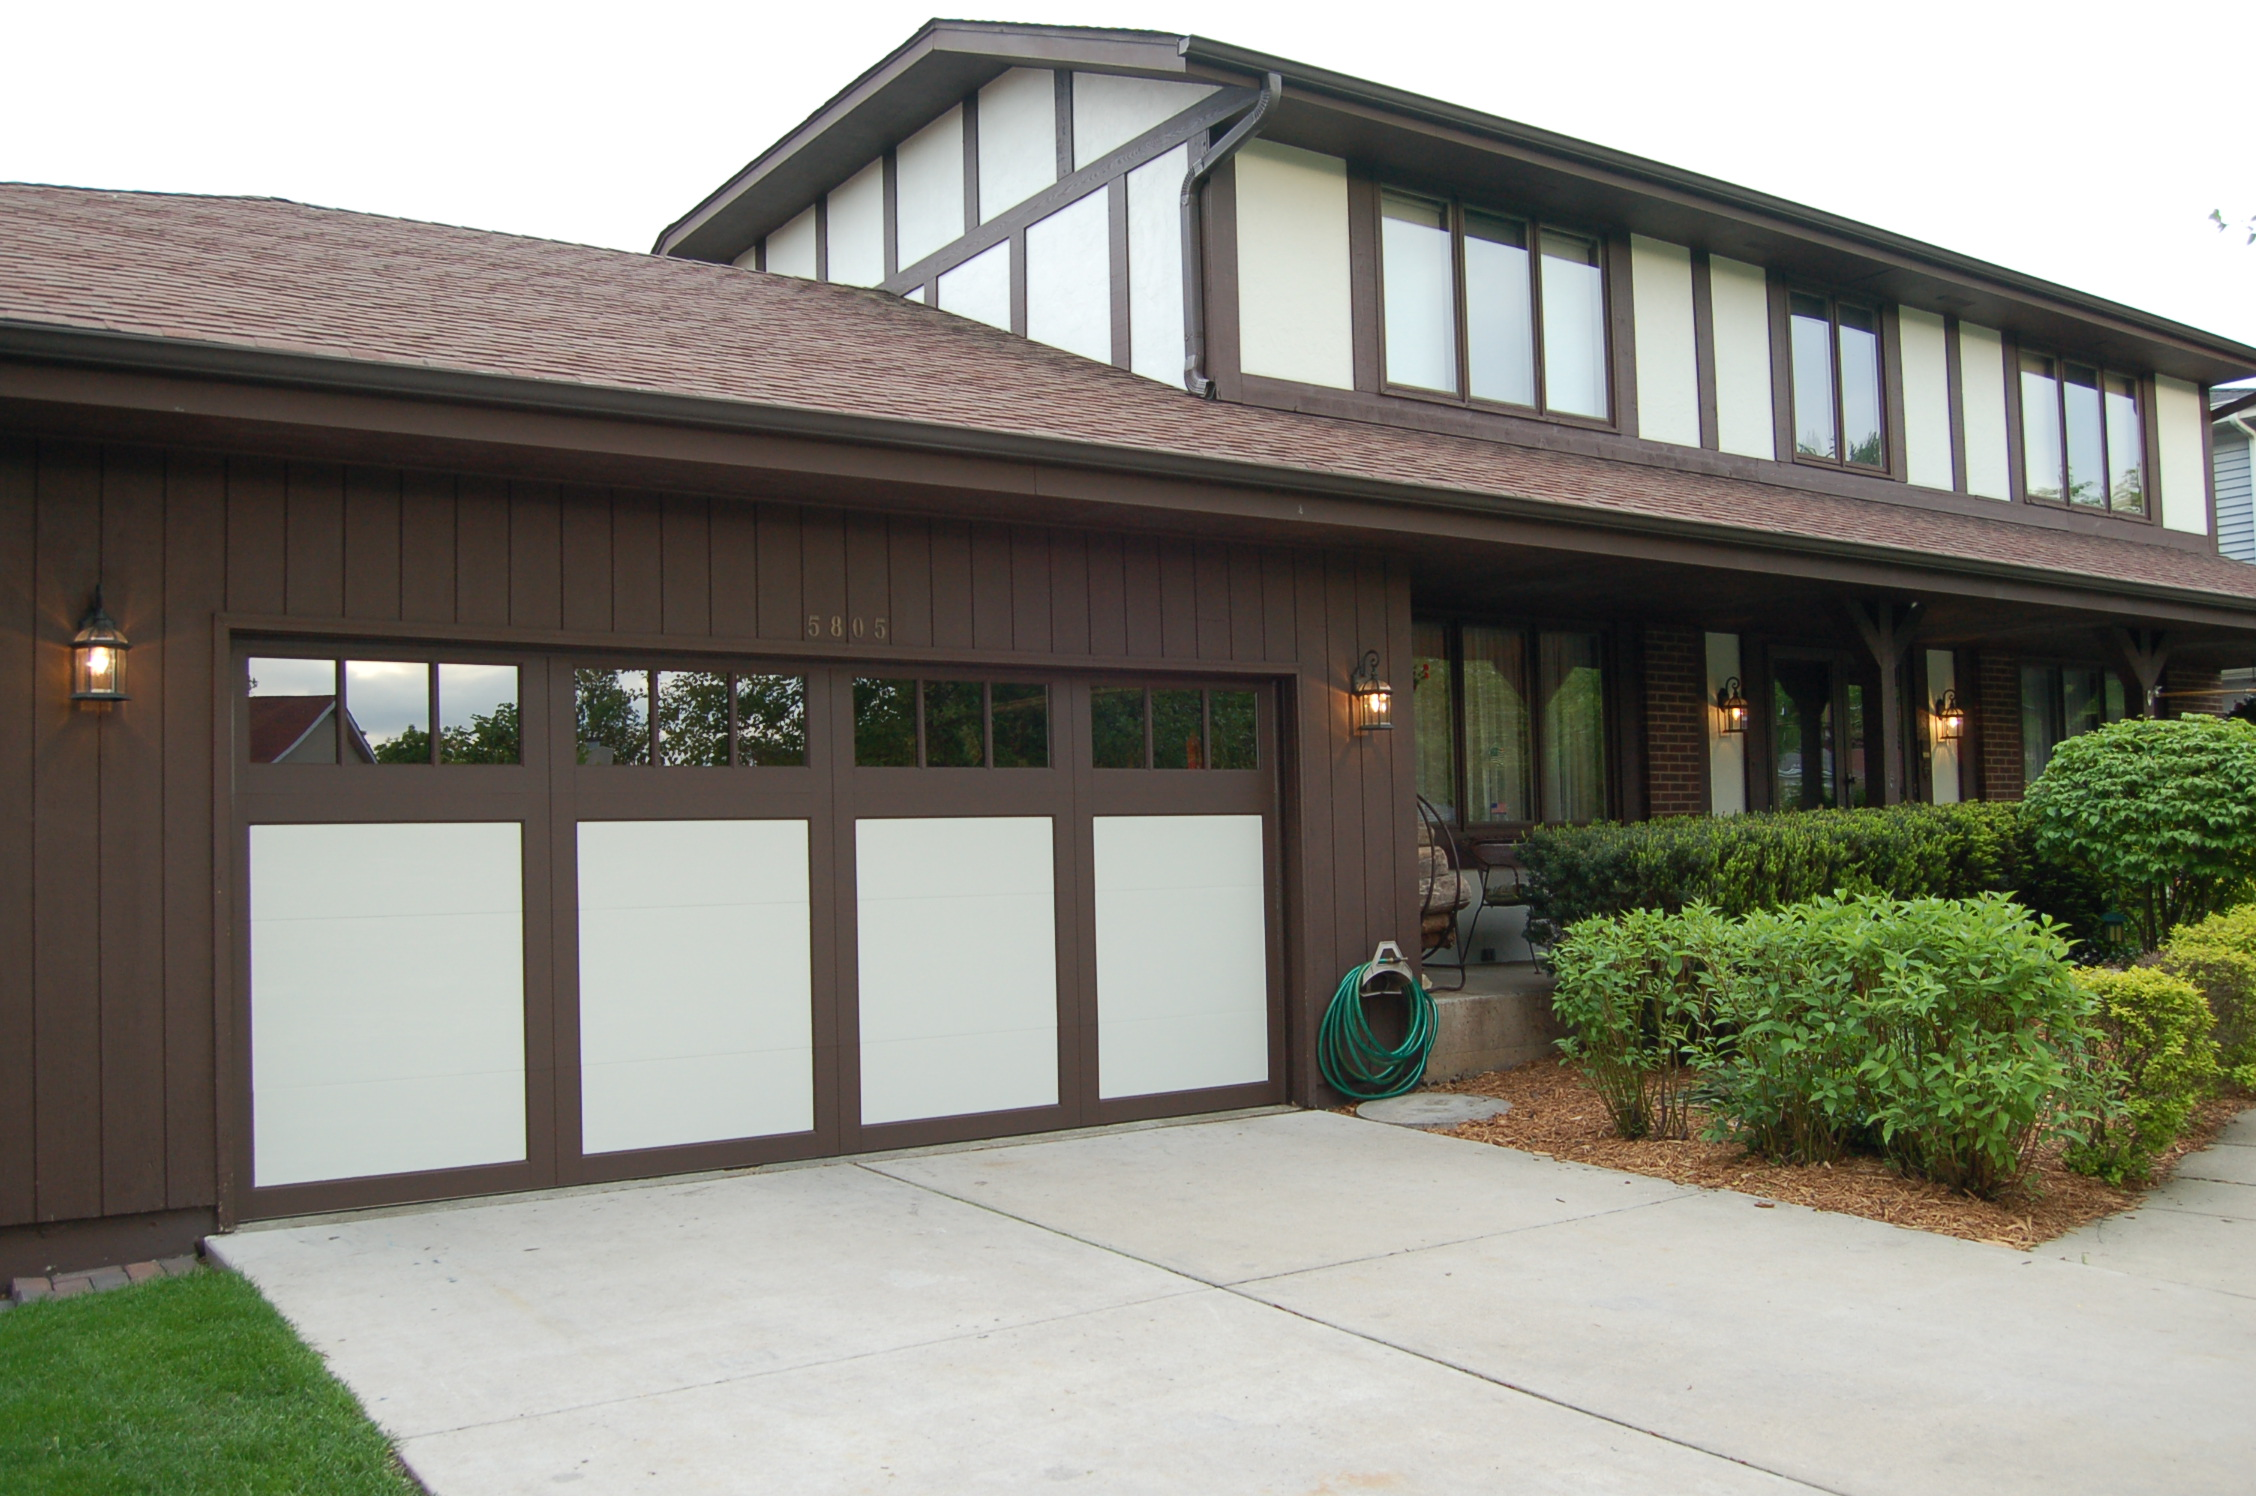 1496 #45642C First Class Garage Door In Downers Grove IL 60515 ChamberofCommerce  pic First Garage Doors 36212256